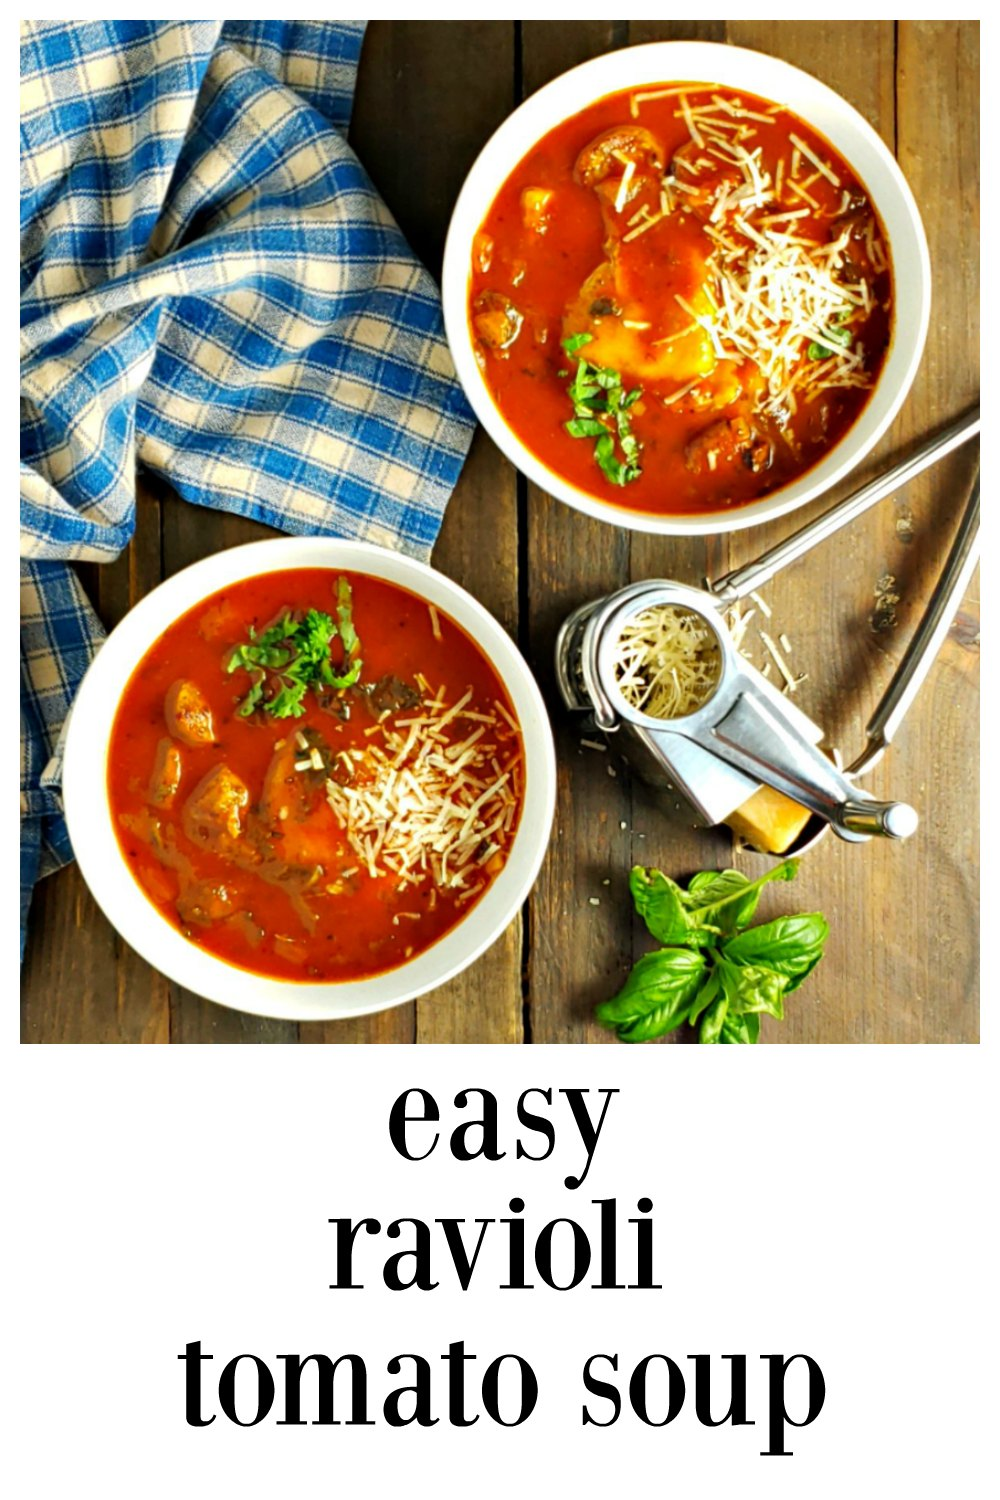 Easy Tomato Ravioli Soup is fast & easy but tastes like it simmered all afternoon. Made from mostly pantry ingredients, it might be your new comfort food all winter long. #RavioliSoup #EasyRavioliSoup #ItalianSoup